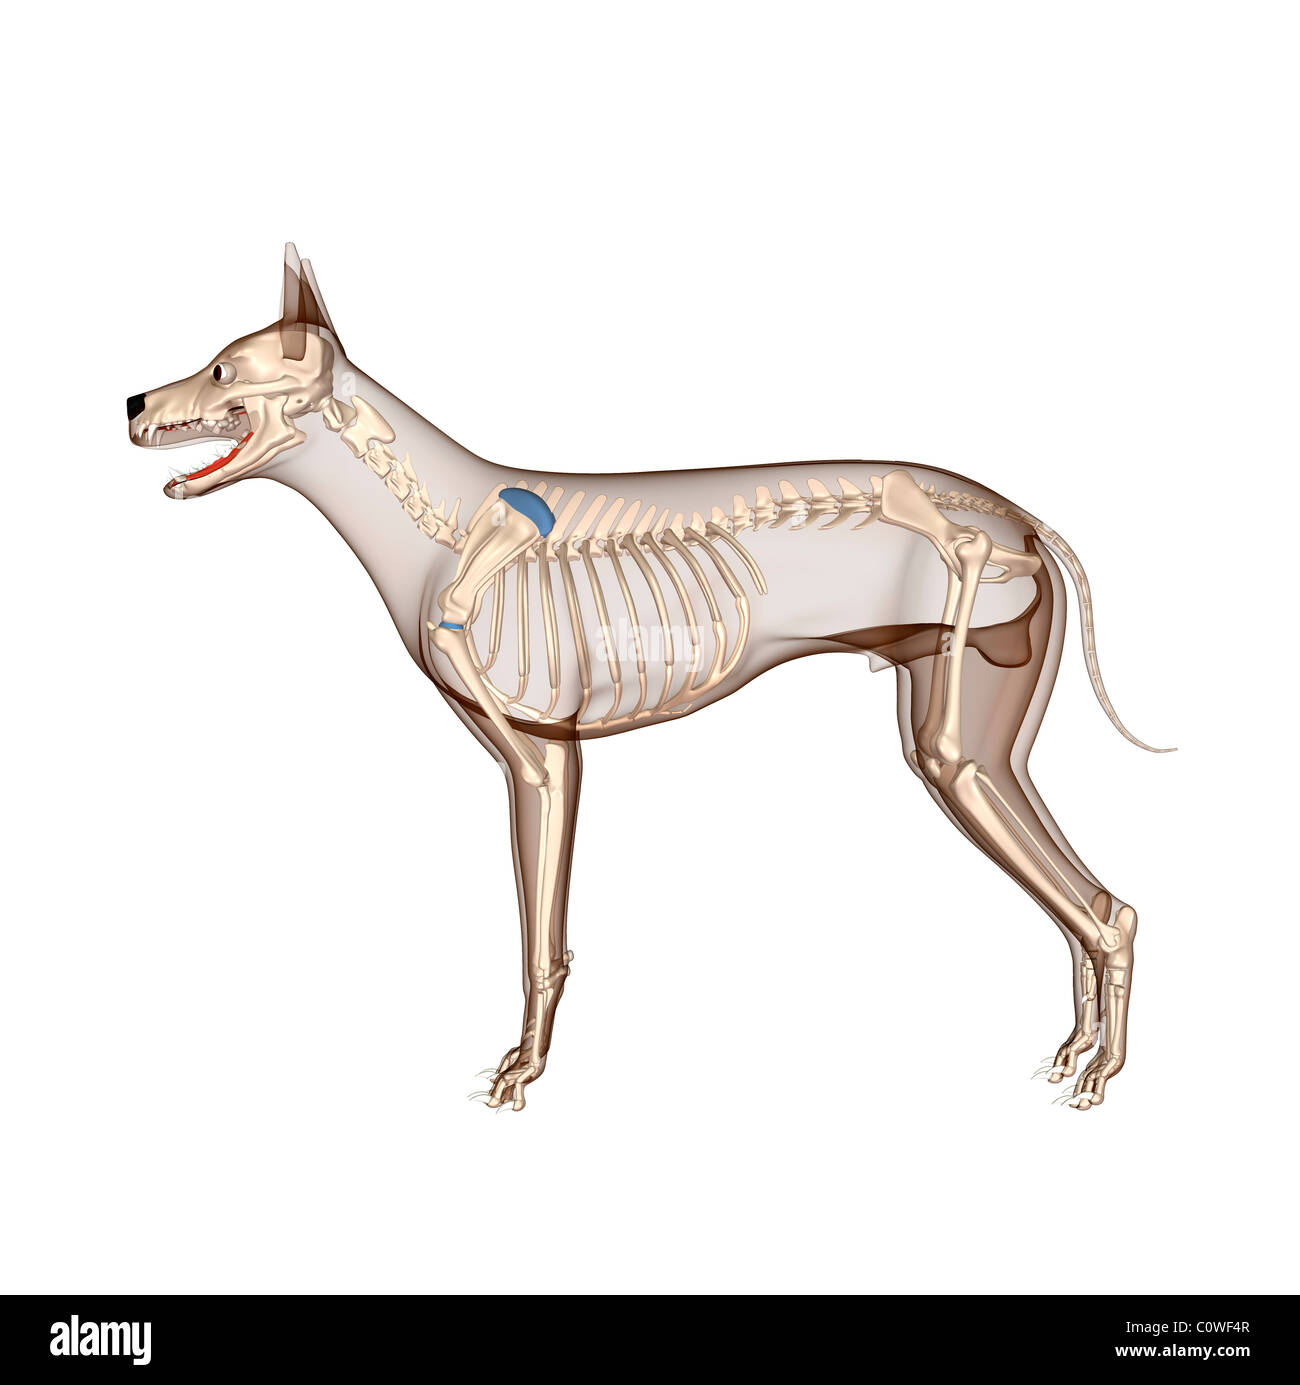 dog anatomy skeleton with transparent body Stock Photo: 34981431 - Alamy